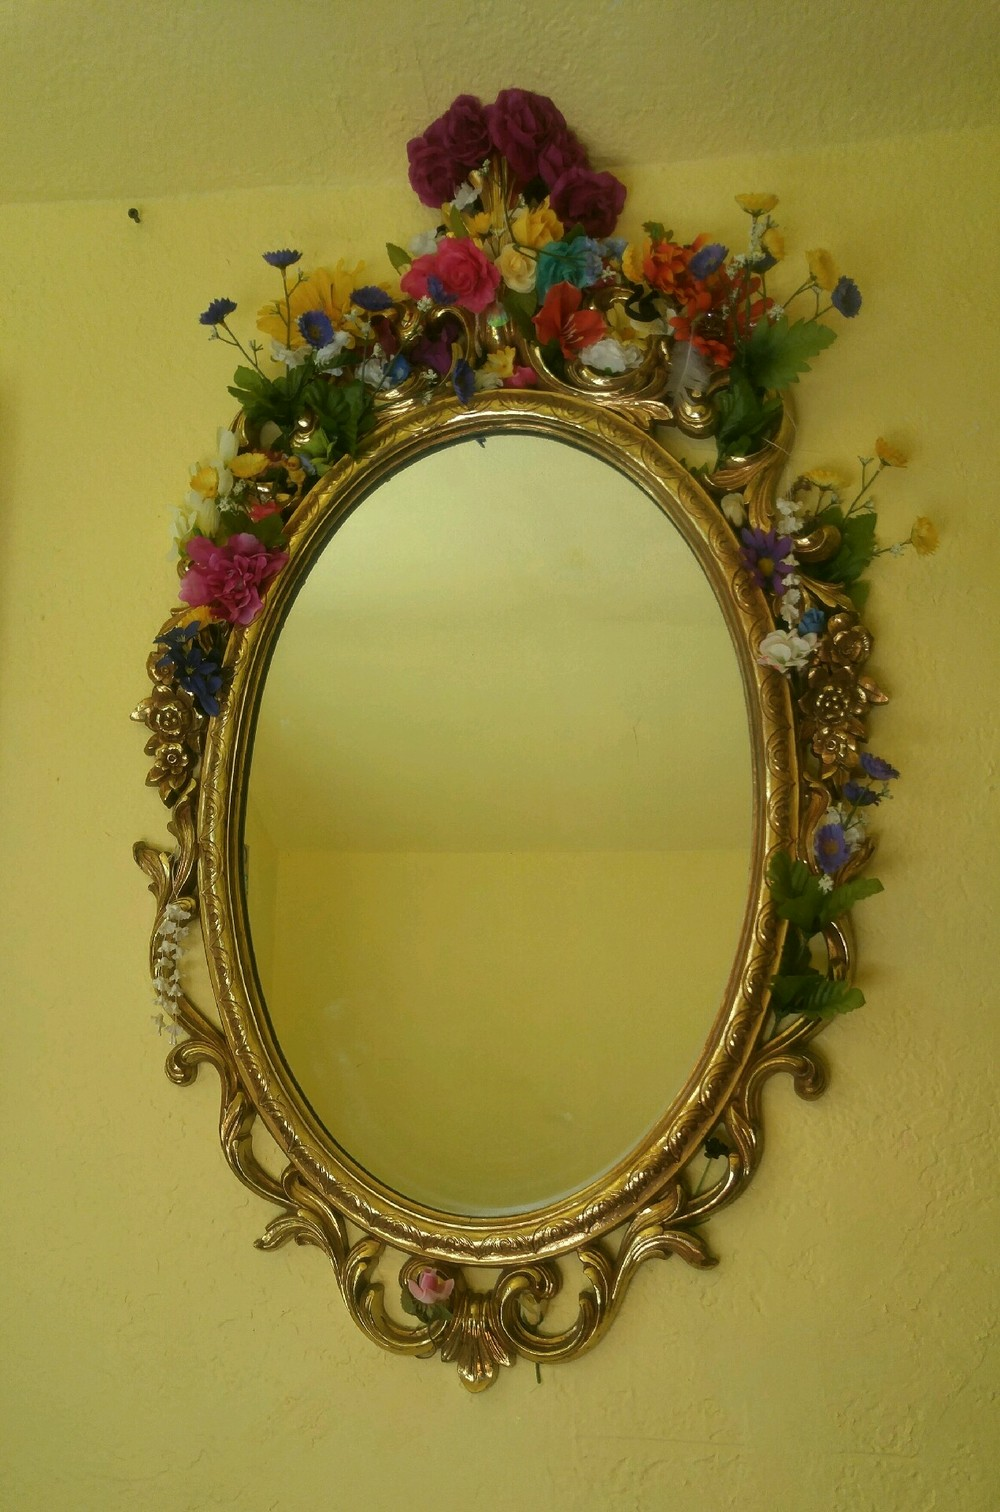 Beautiful vintage mirror + fake flowers = AWESOME!